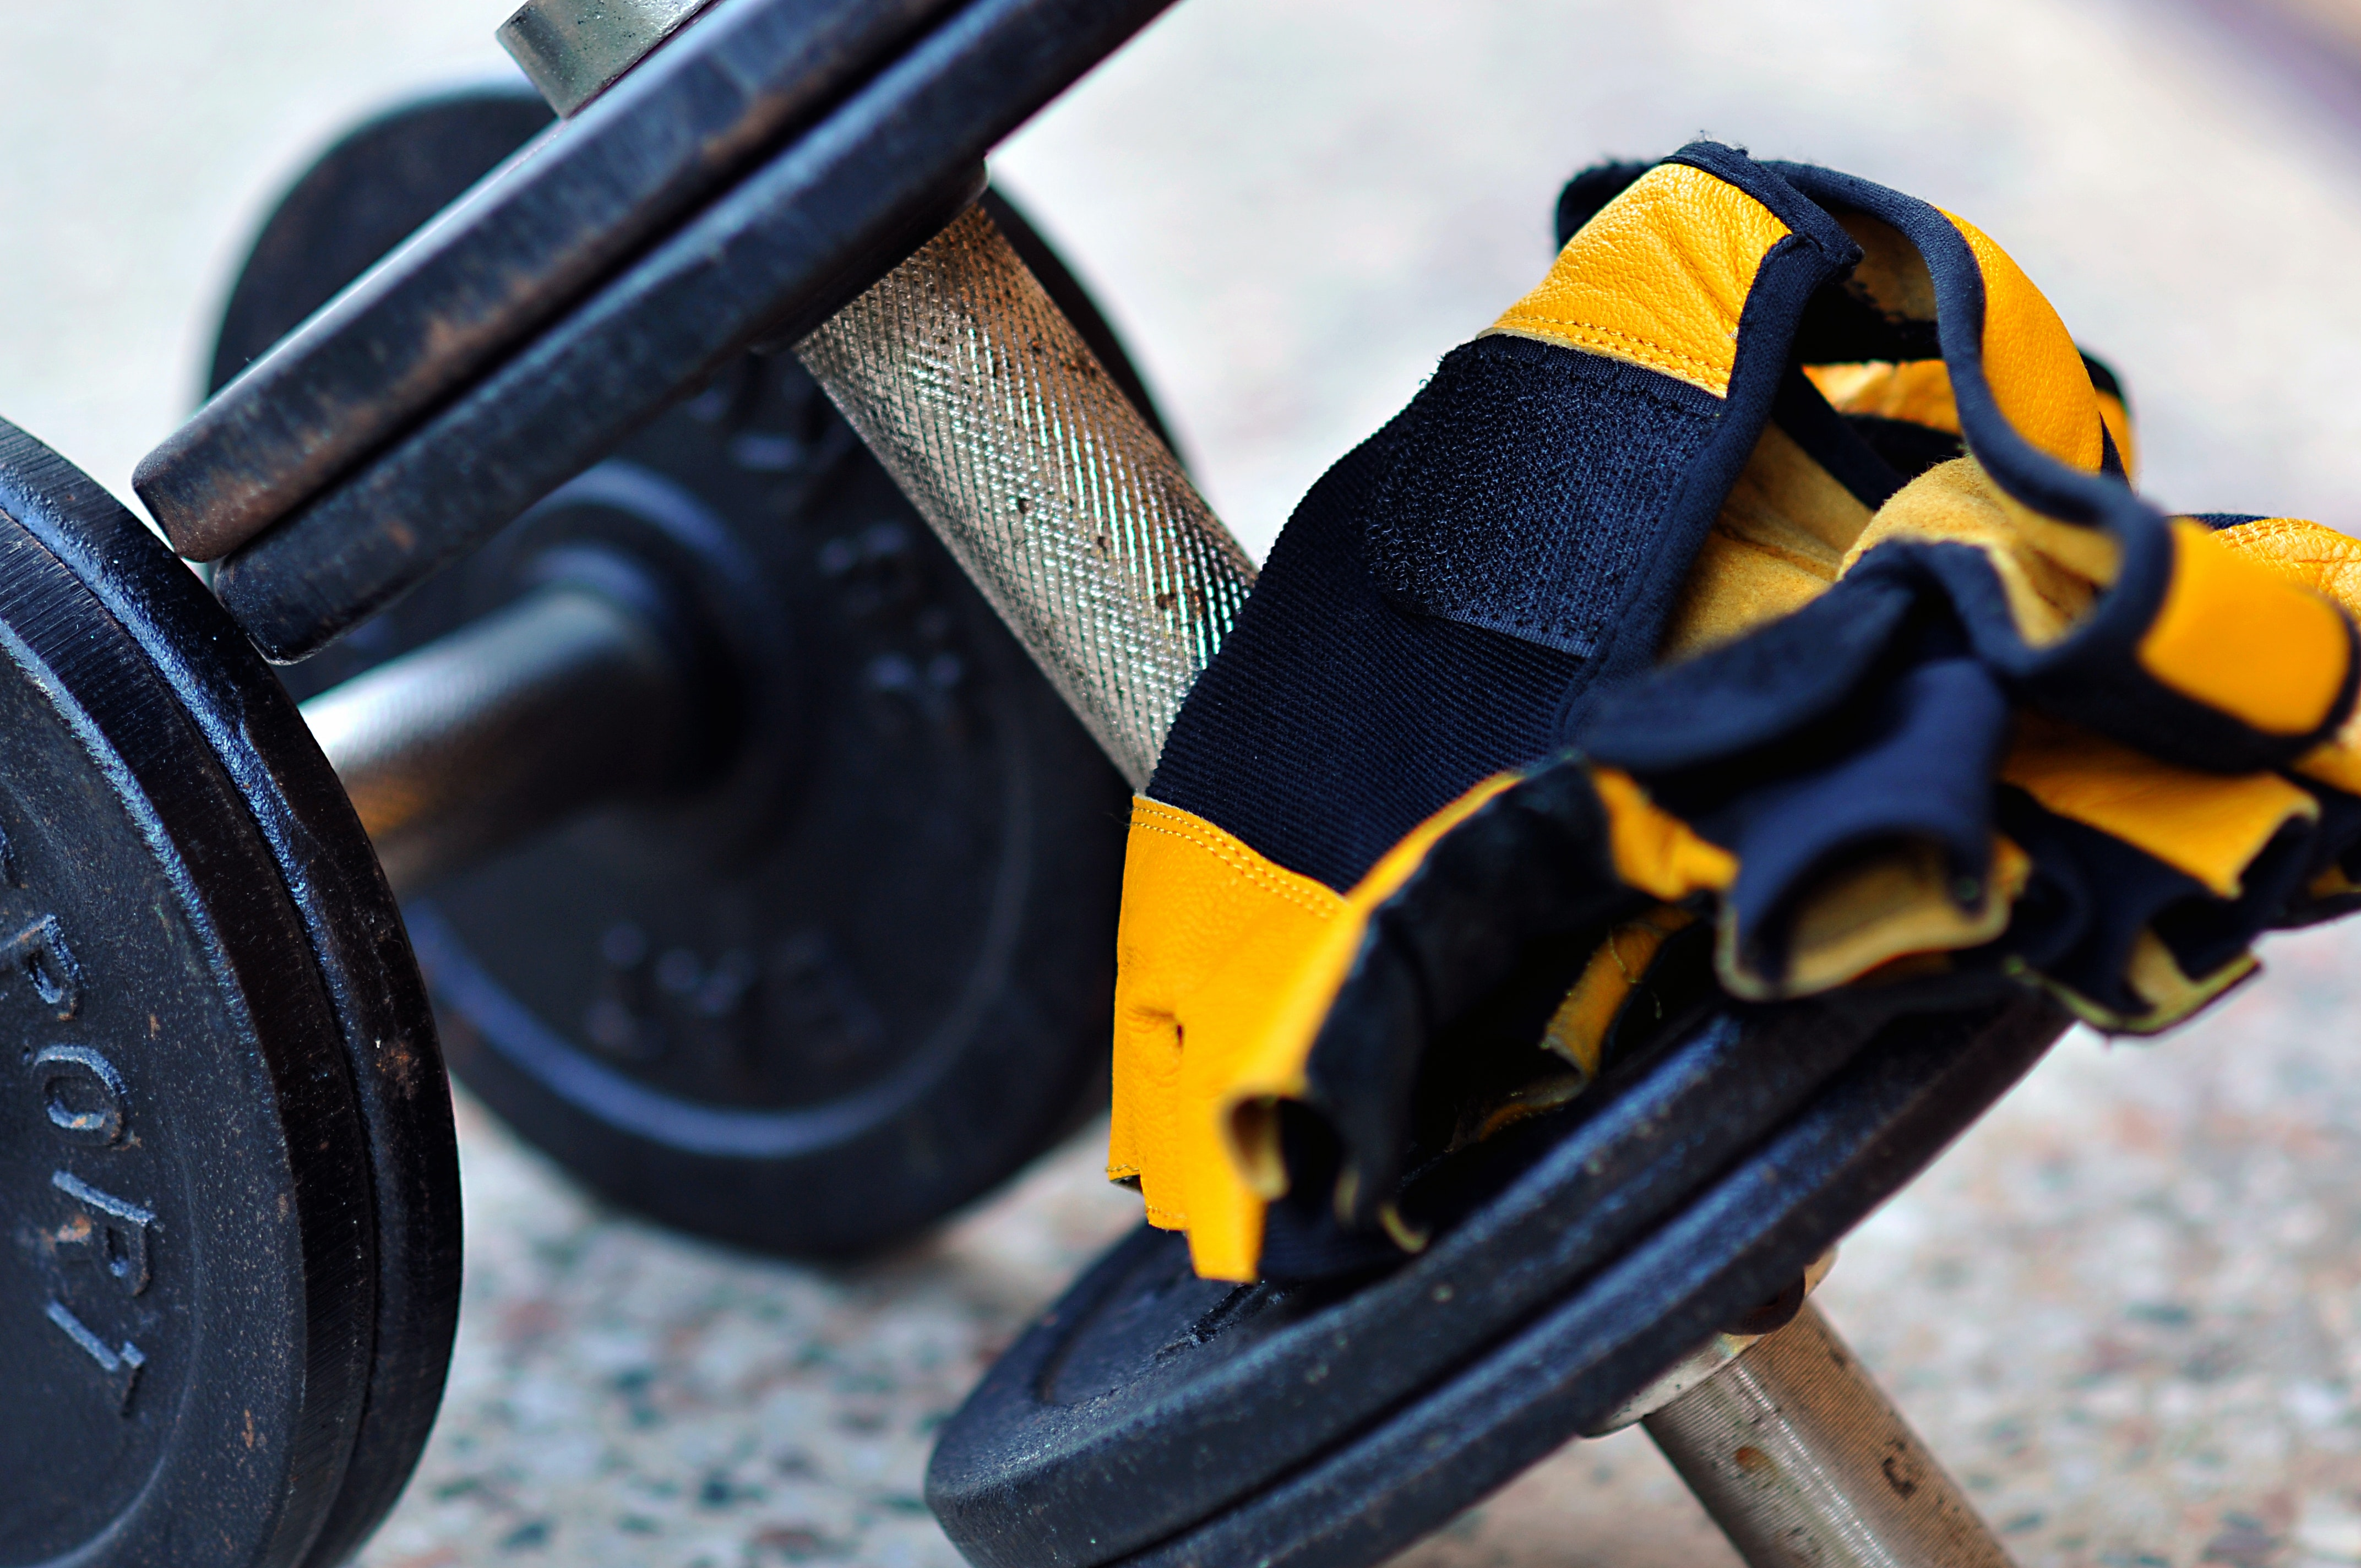 Roller Skate Attachments For Shoes